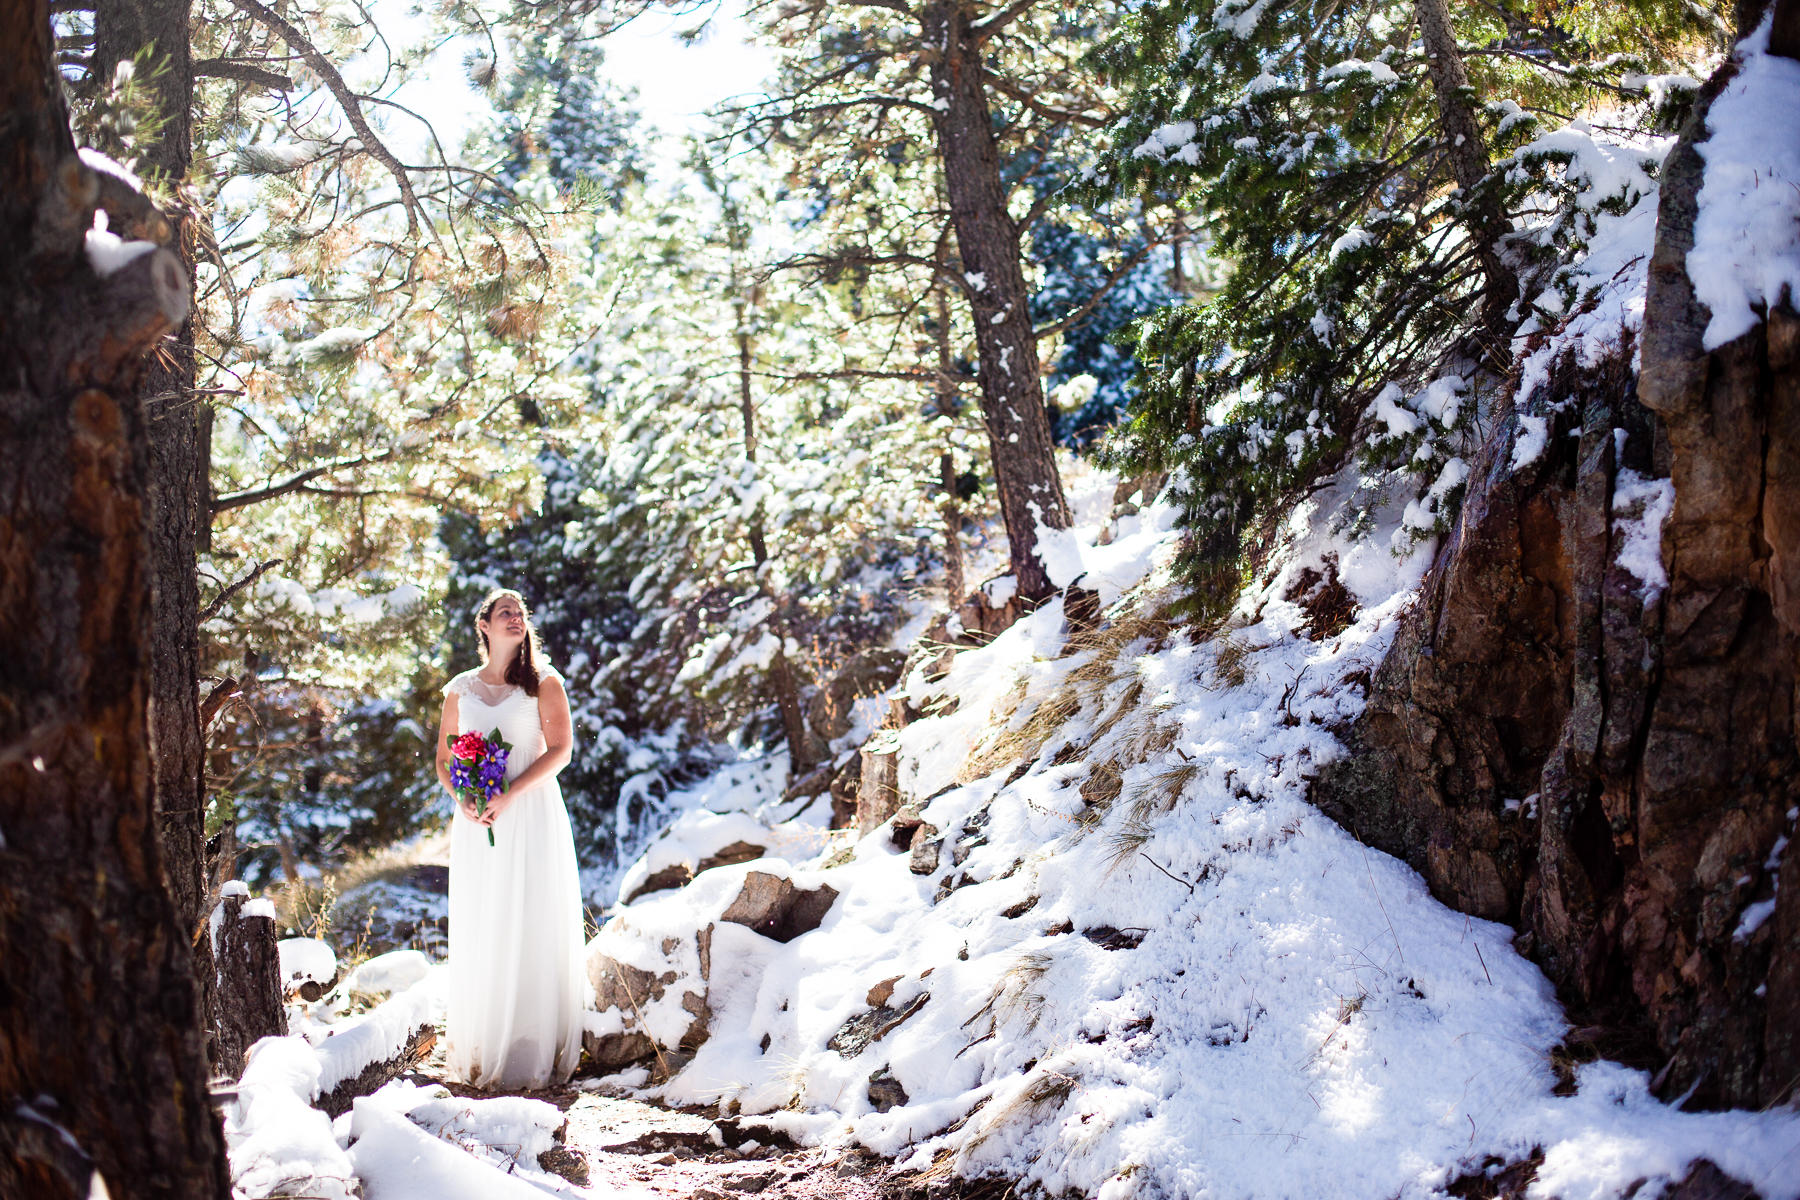 Eldorado Canyon, Colorado Bride Wedding Image | the bride turned to look at some snow falling off a tree further uphill